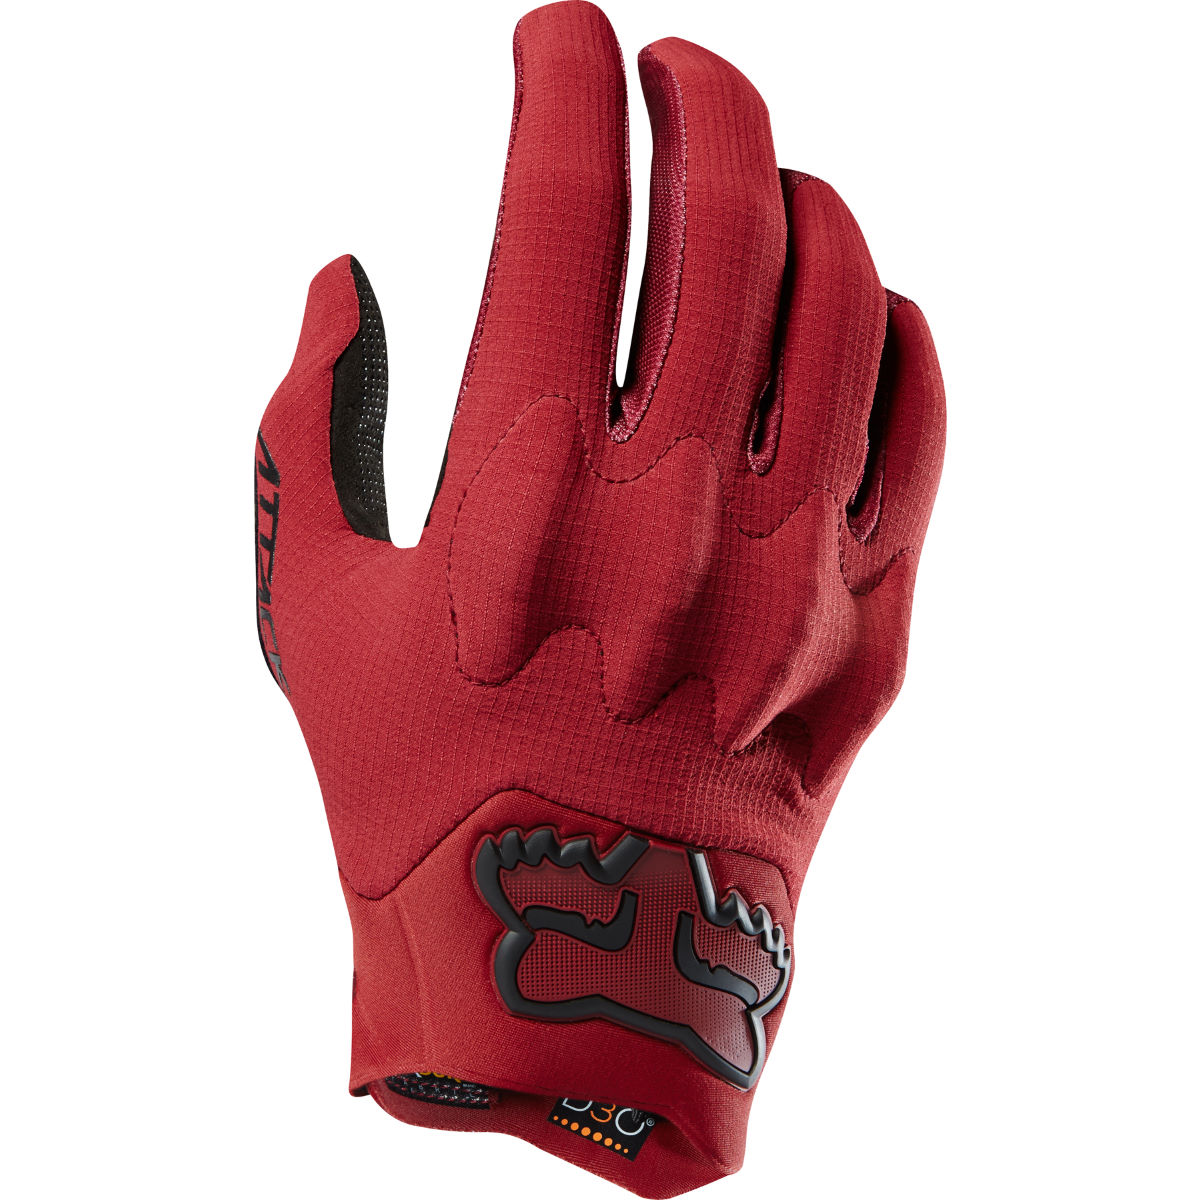 Fox Racing Attack Gloves Red L - S Dark Red | Long Finger Gloves